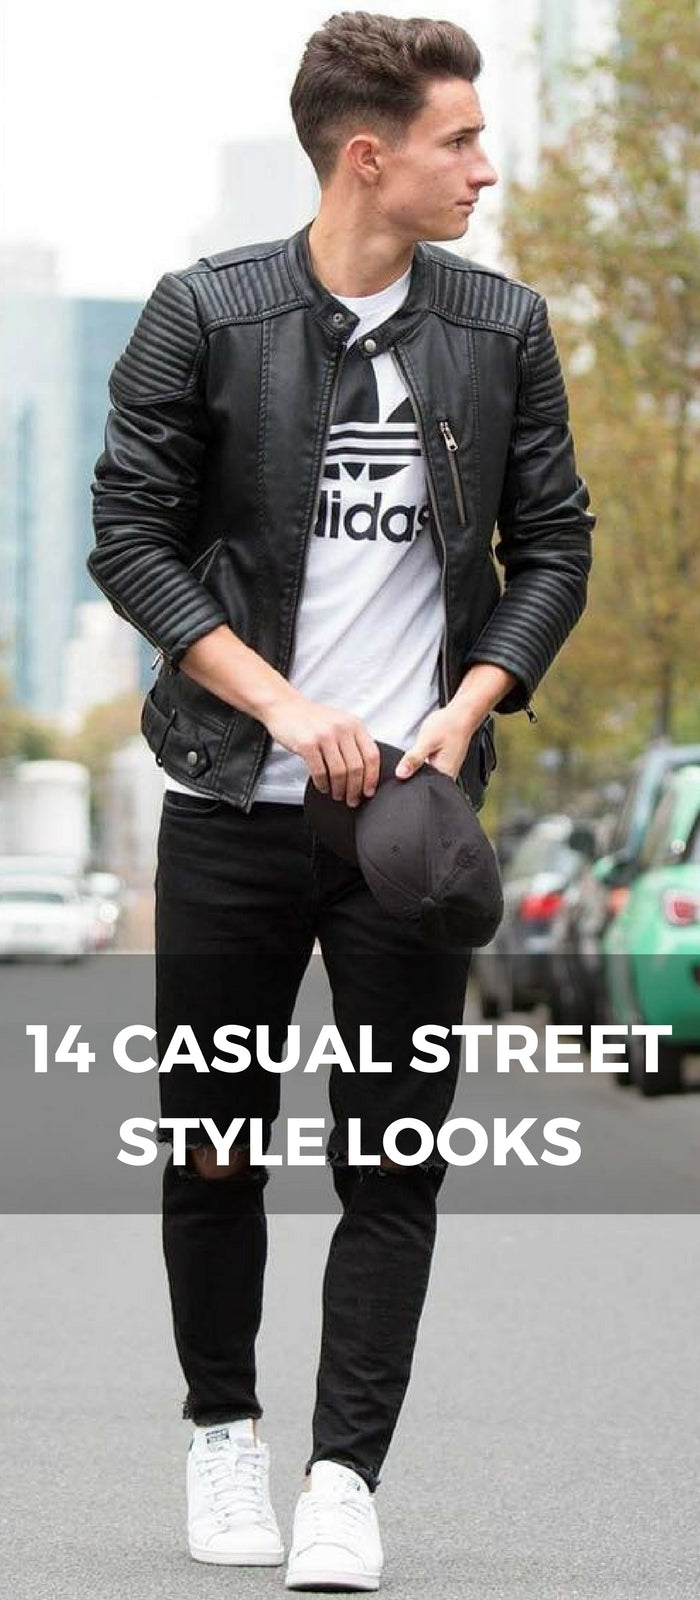 casual street style looks for men